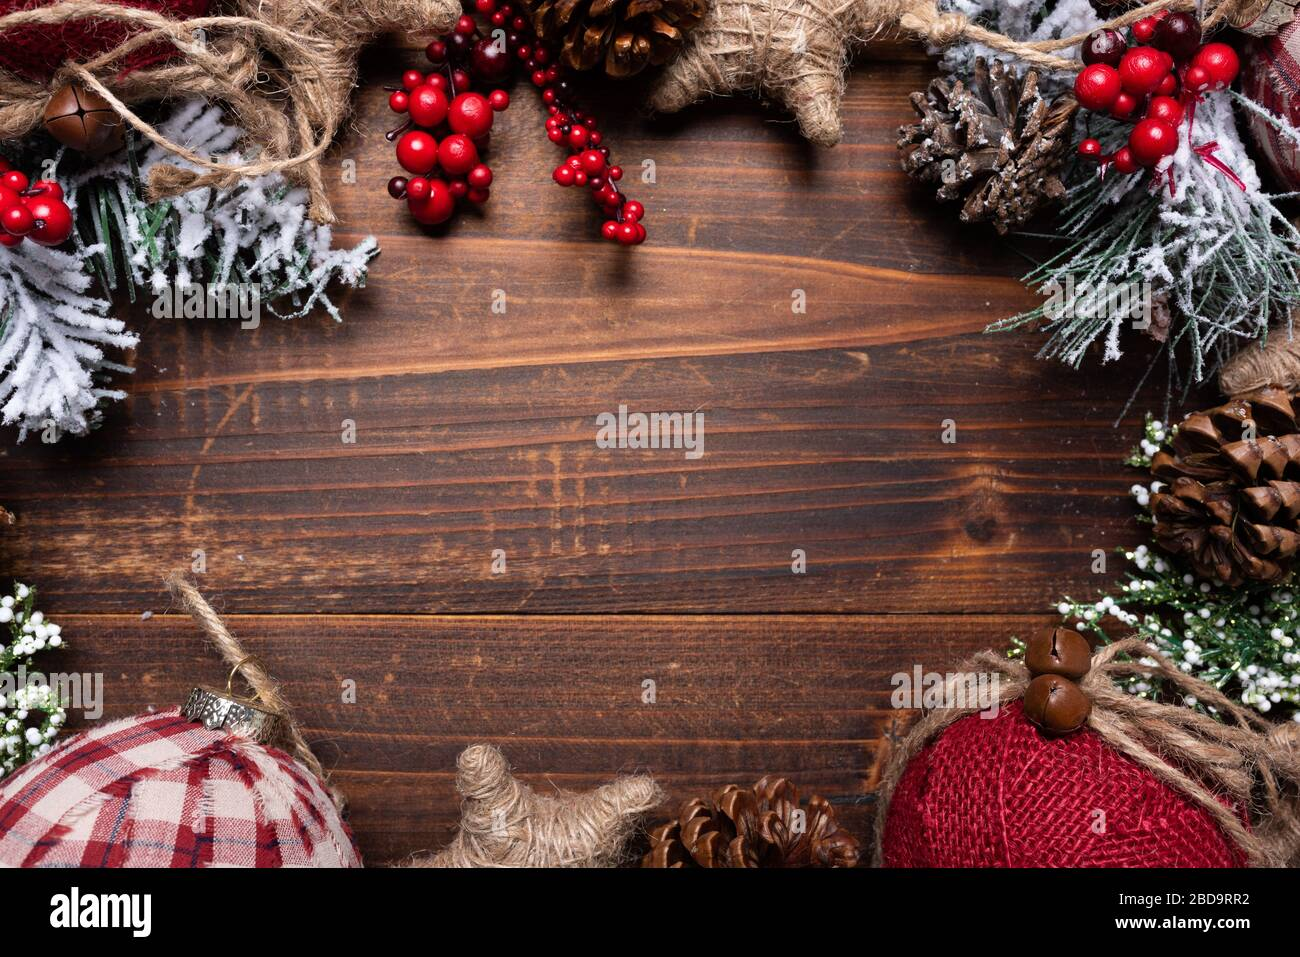 Christmas decorations on a brown wood background with copy space. Pine cones, garland, berries and pine branches Stock Photo